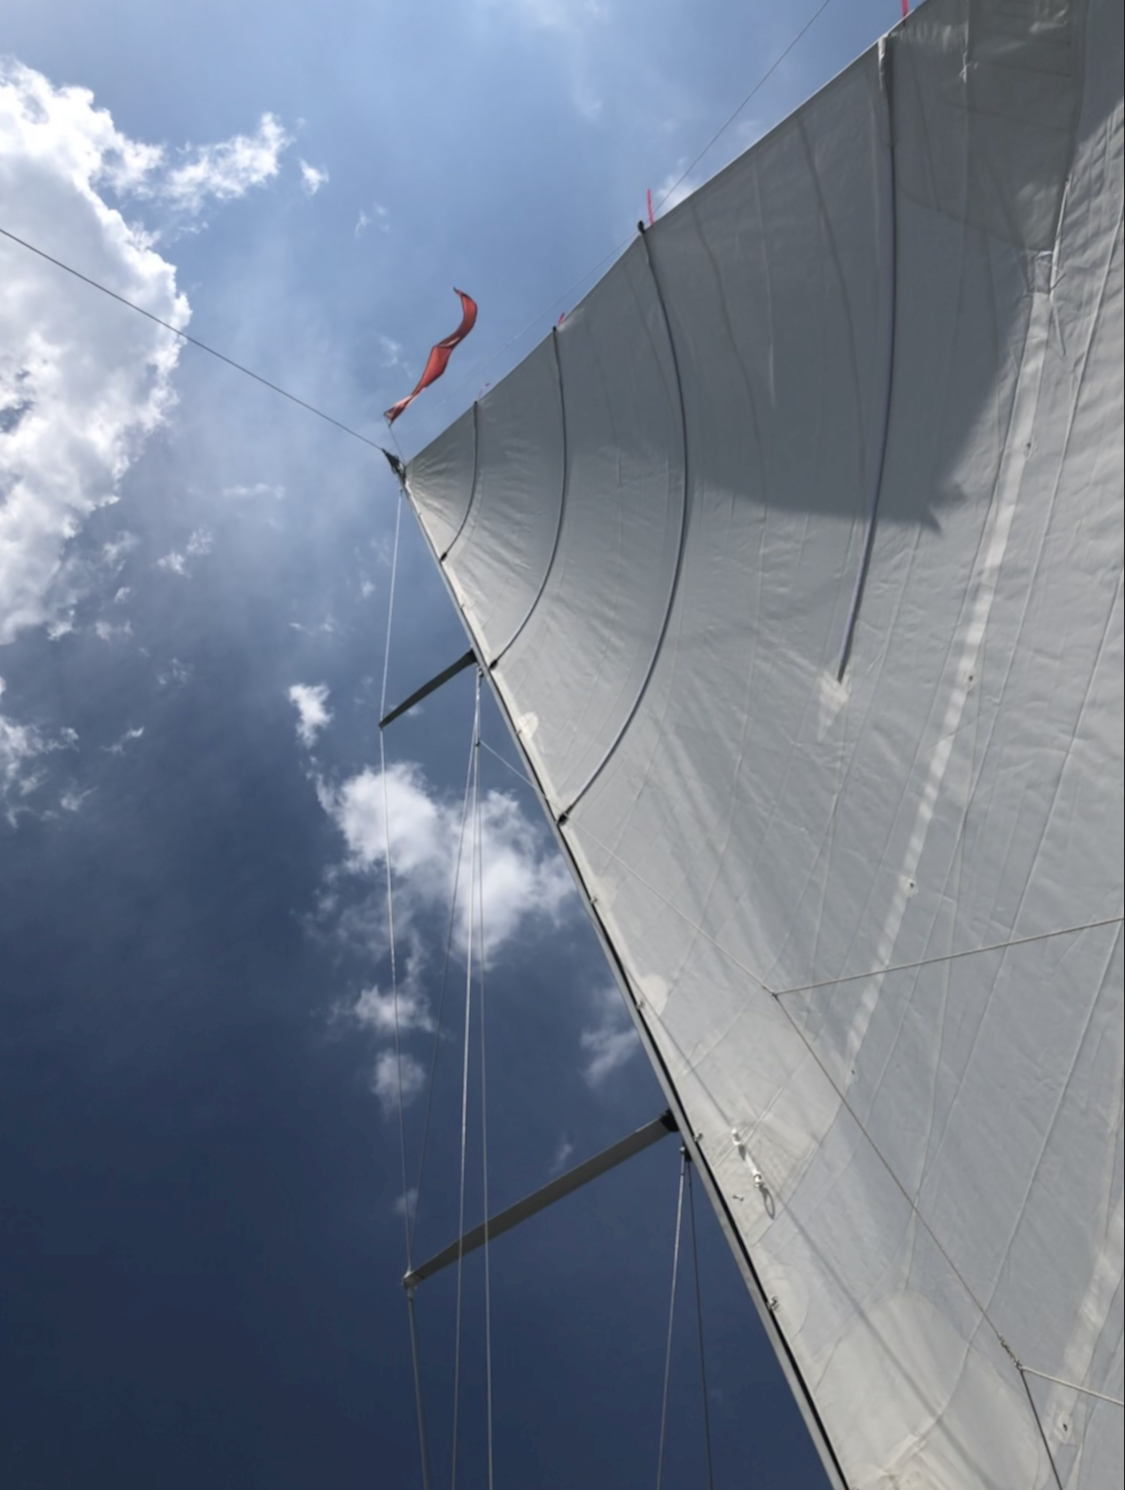 Looking up at the Mainsail to blue skies with puffy white clouds